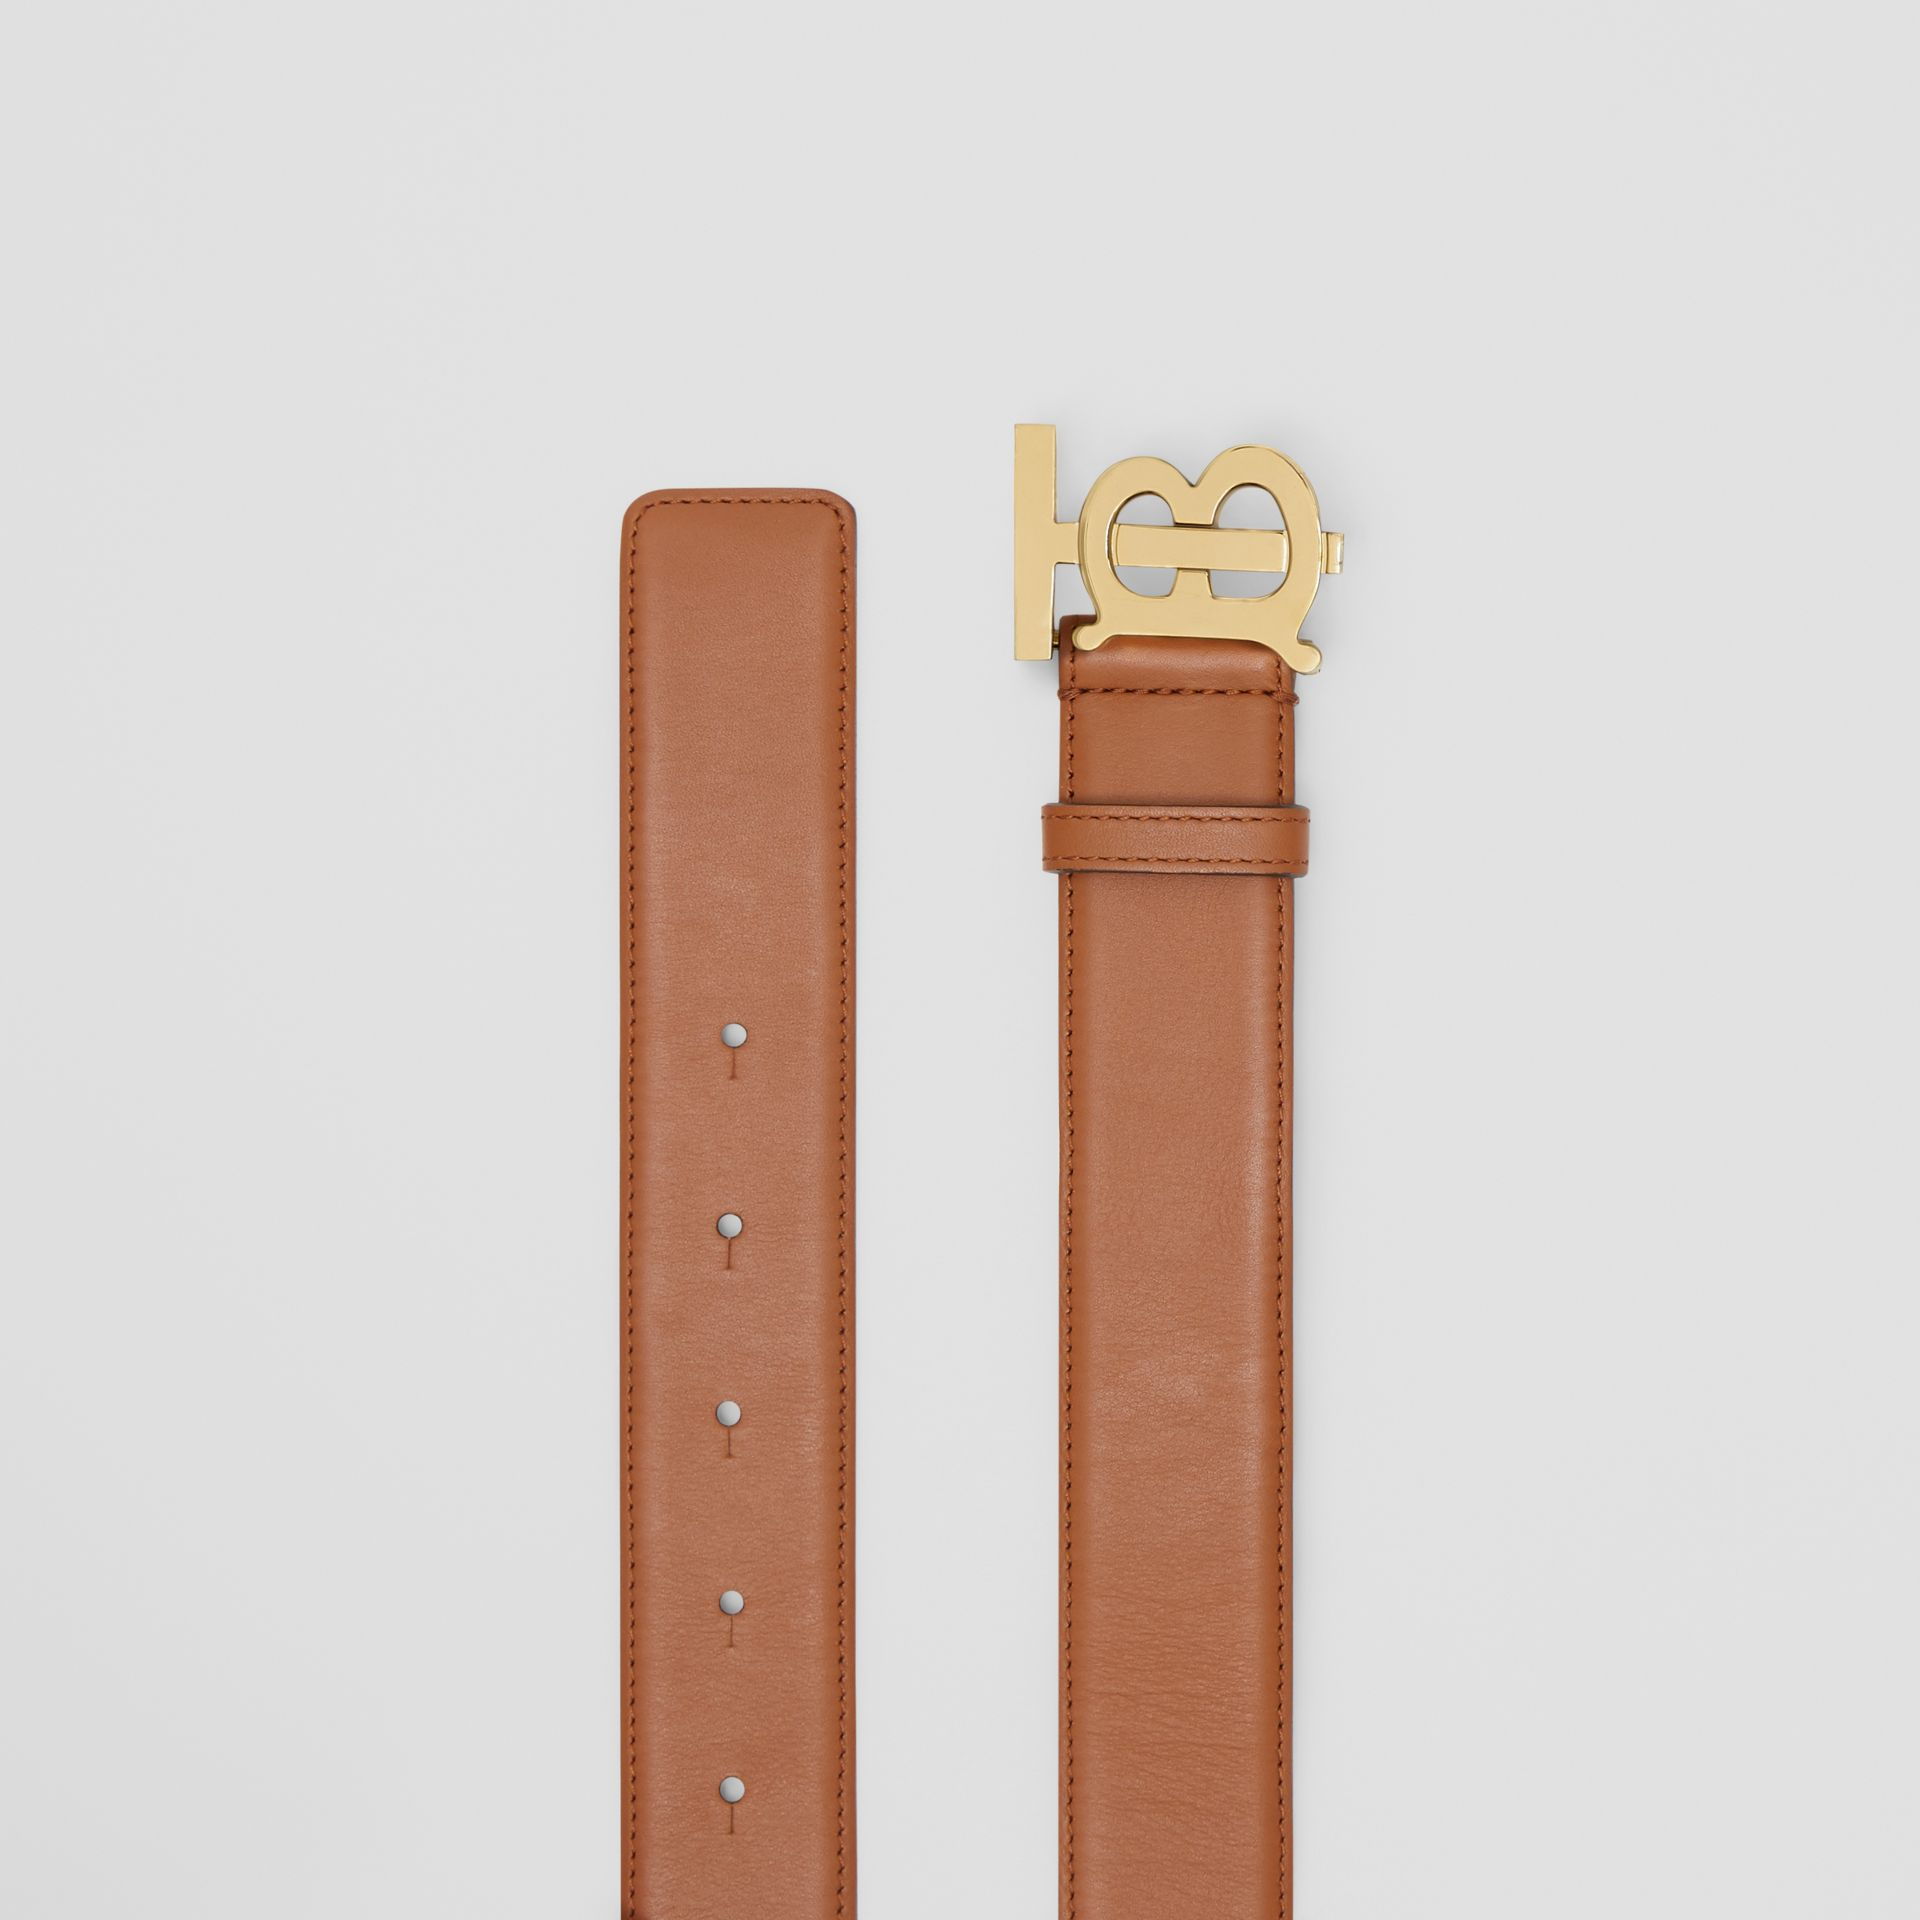 Monogram Motif Leather Belt in Tan - Women | Burberry United States - gallery image 5